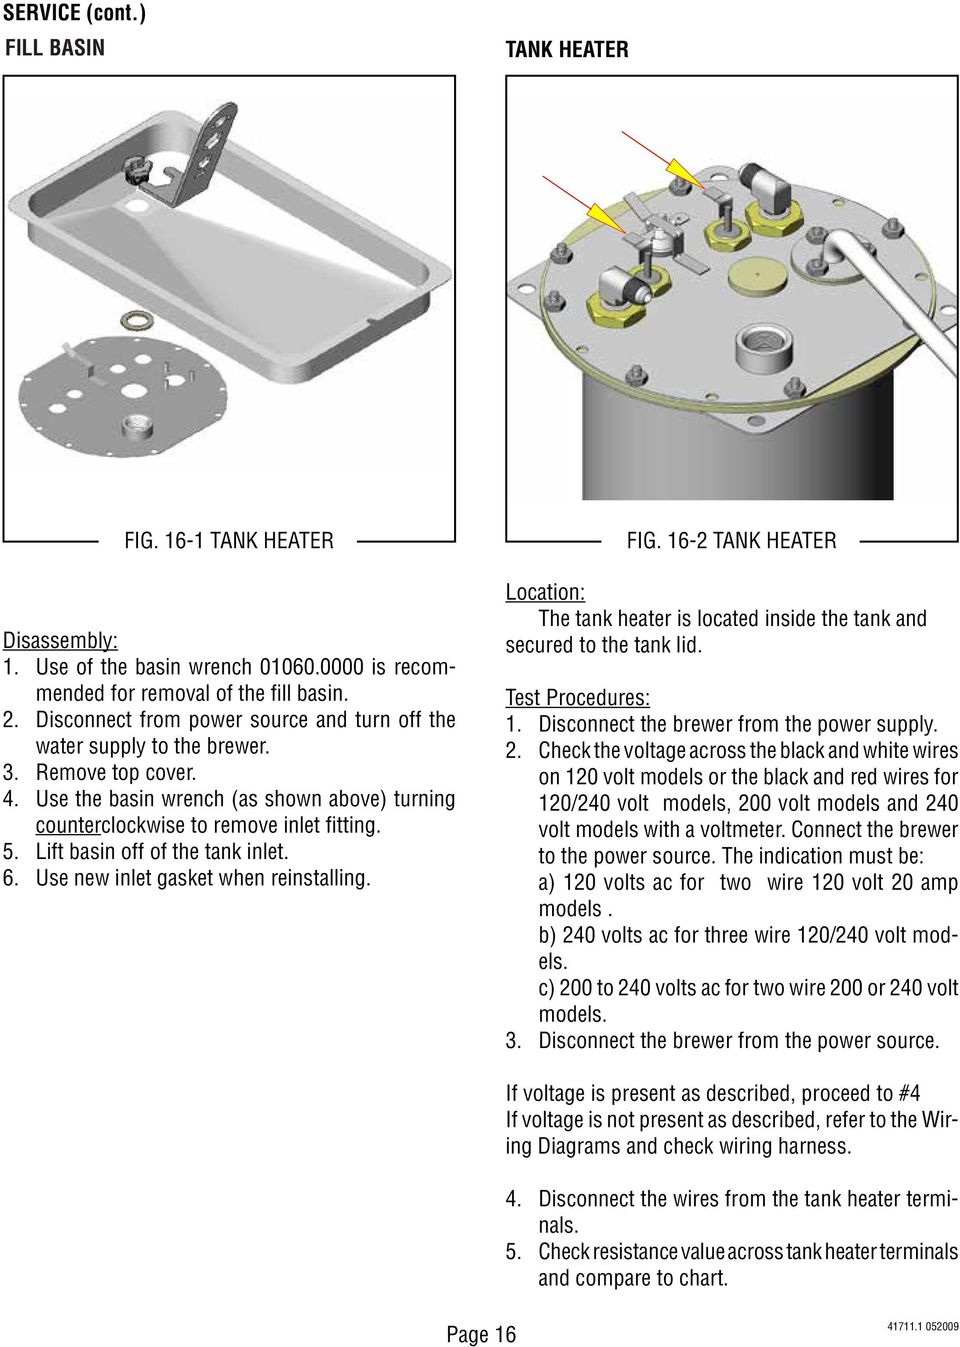 C Cs Ct Cwtf Crt Crtf Series Including Dv Mv Aps Tc Ts Bunn Cw Wire Diagram Lift Basin Off Of The Tank Inlet 6 Use New Gasket When Reinstalling